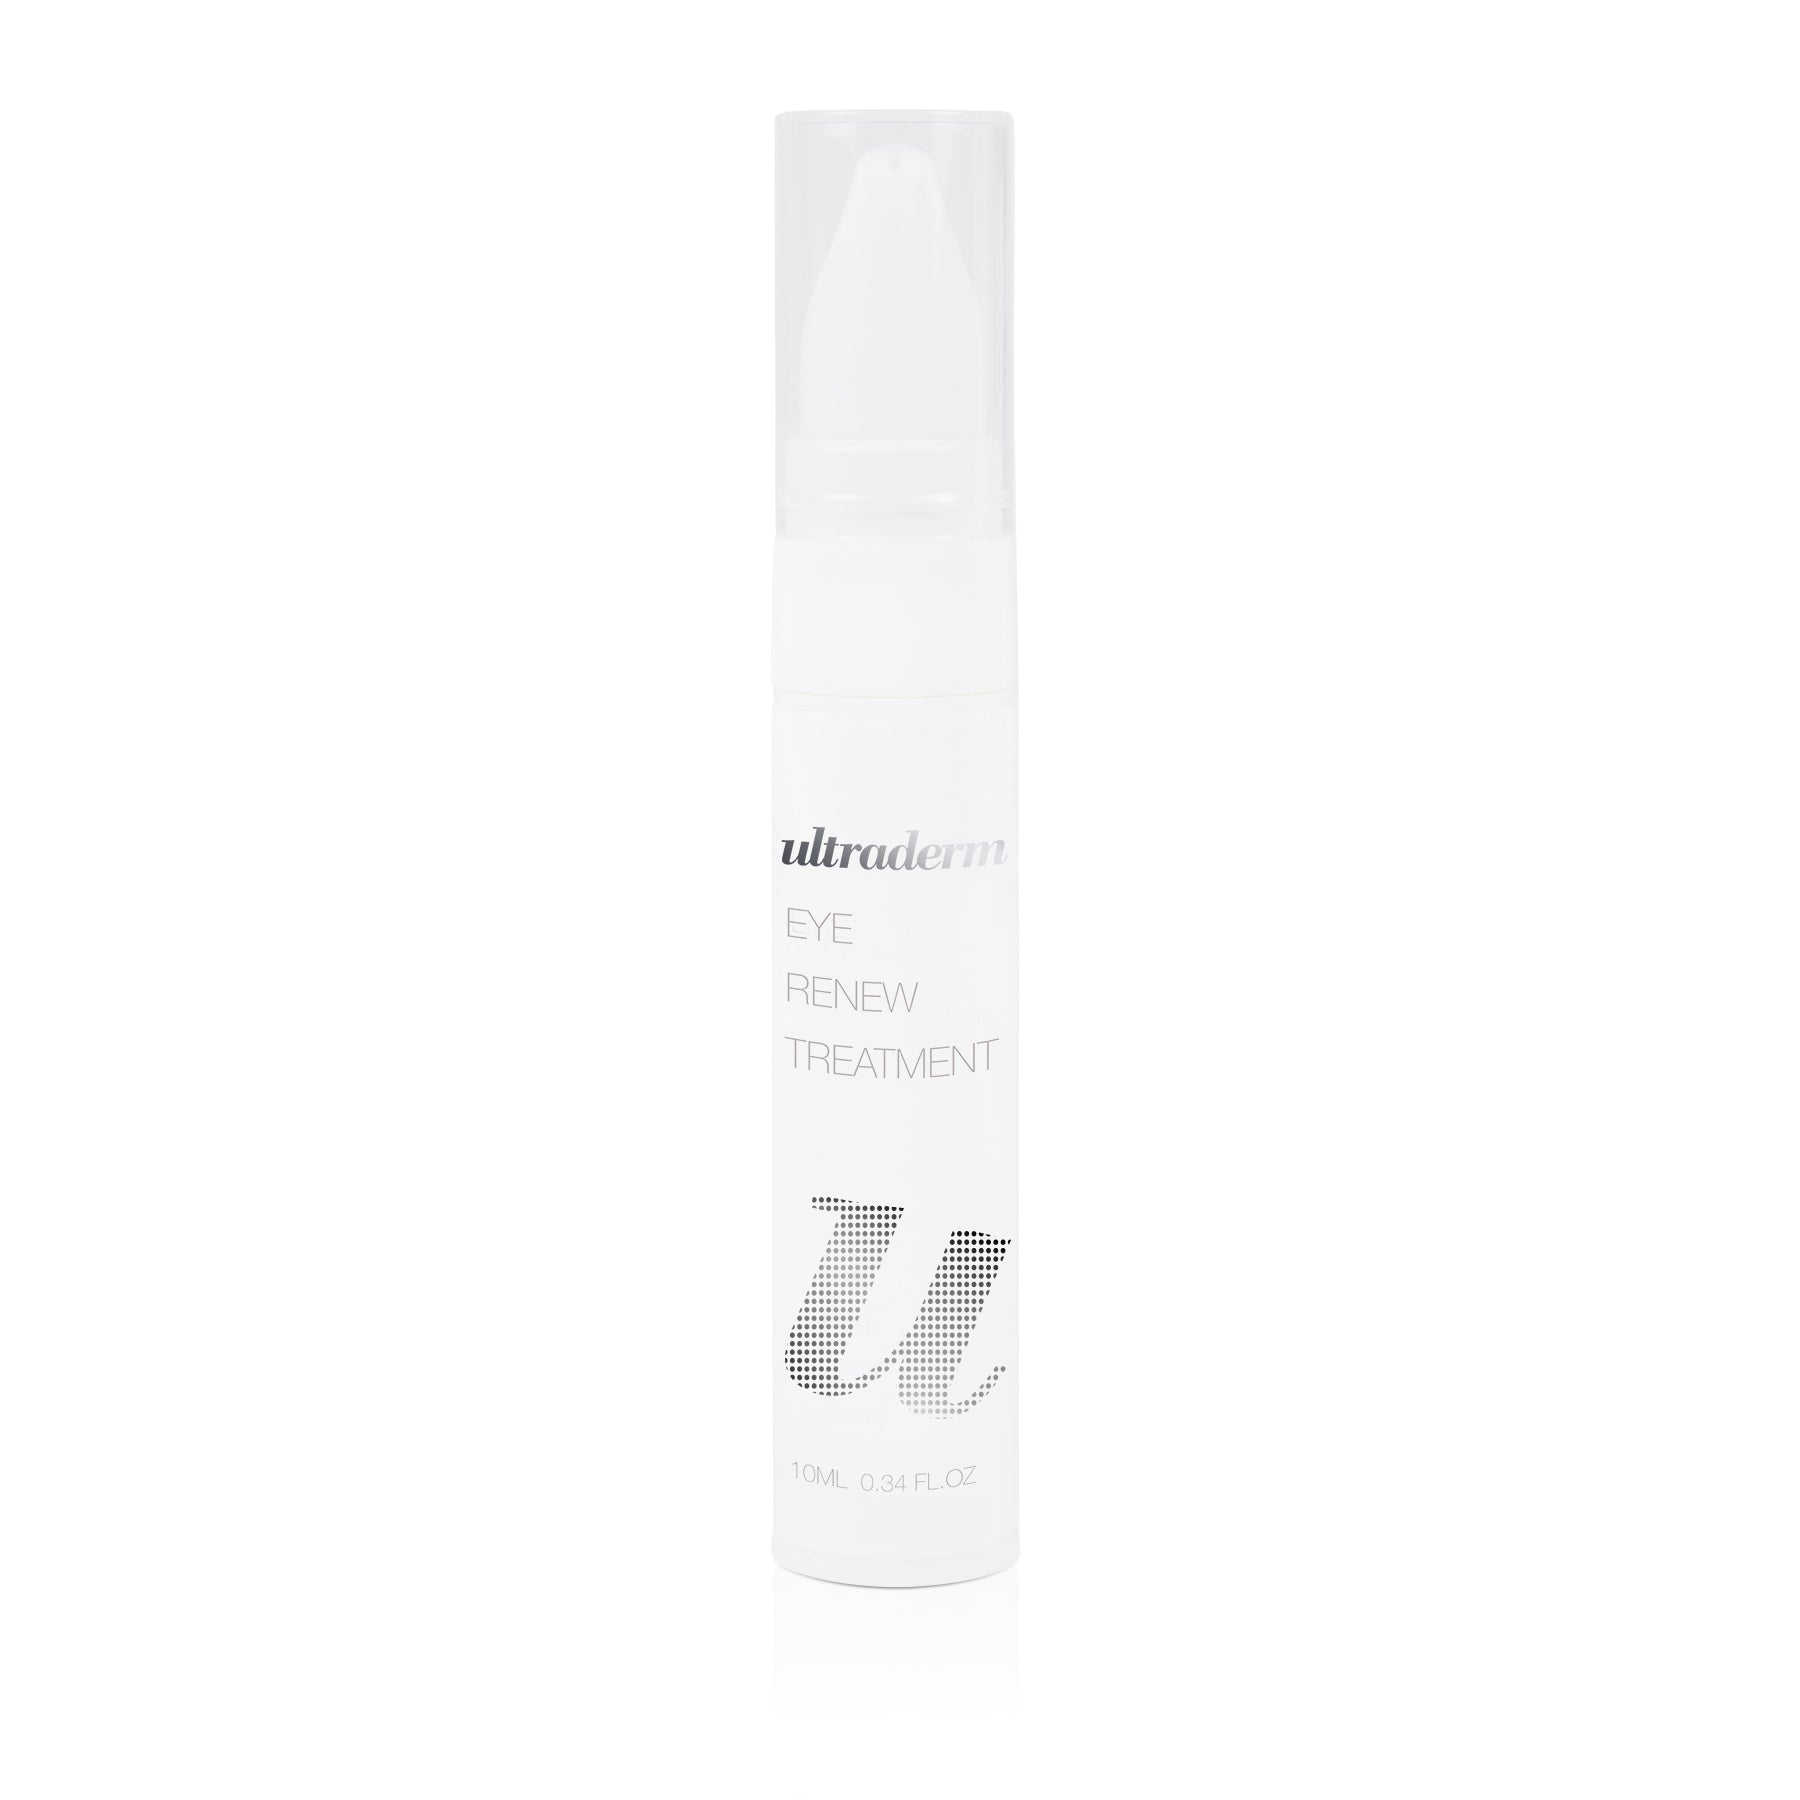 Ultraderm Eye Renew Treatment, Concentrated Anti-Wrinkle Eye Cream